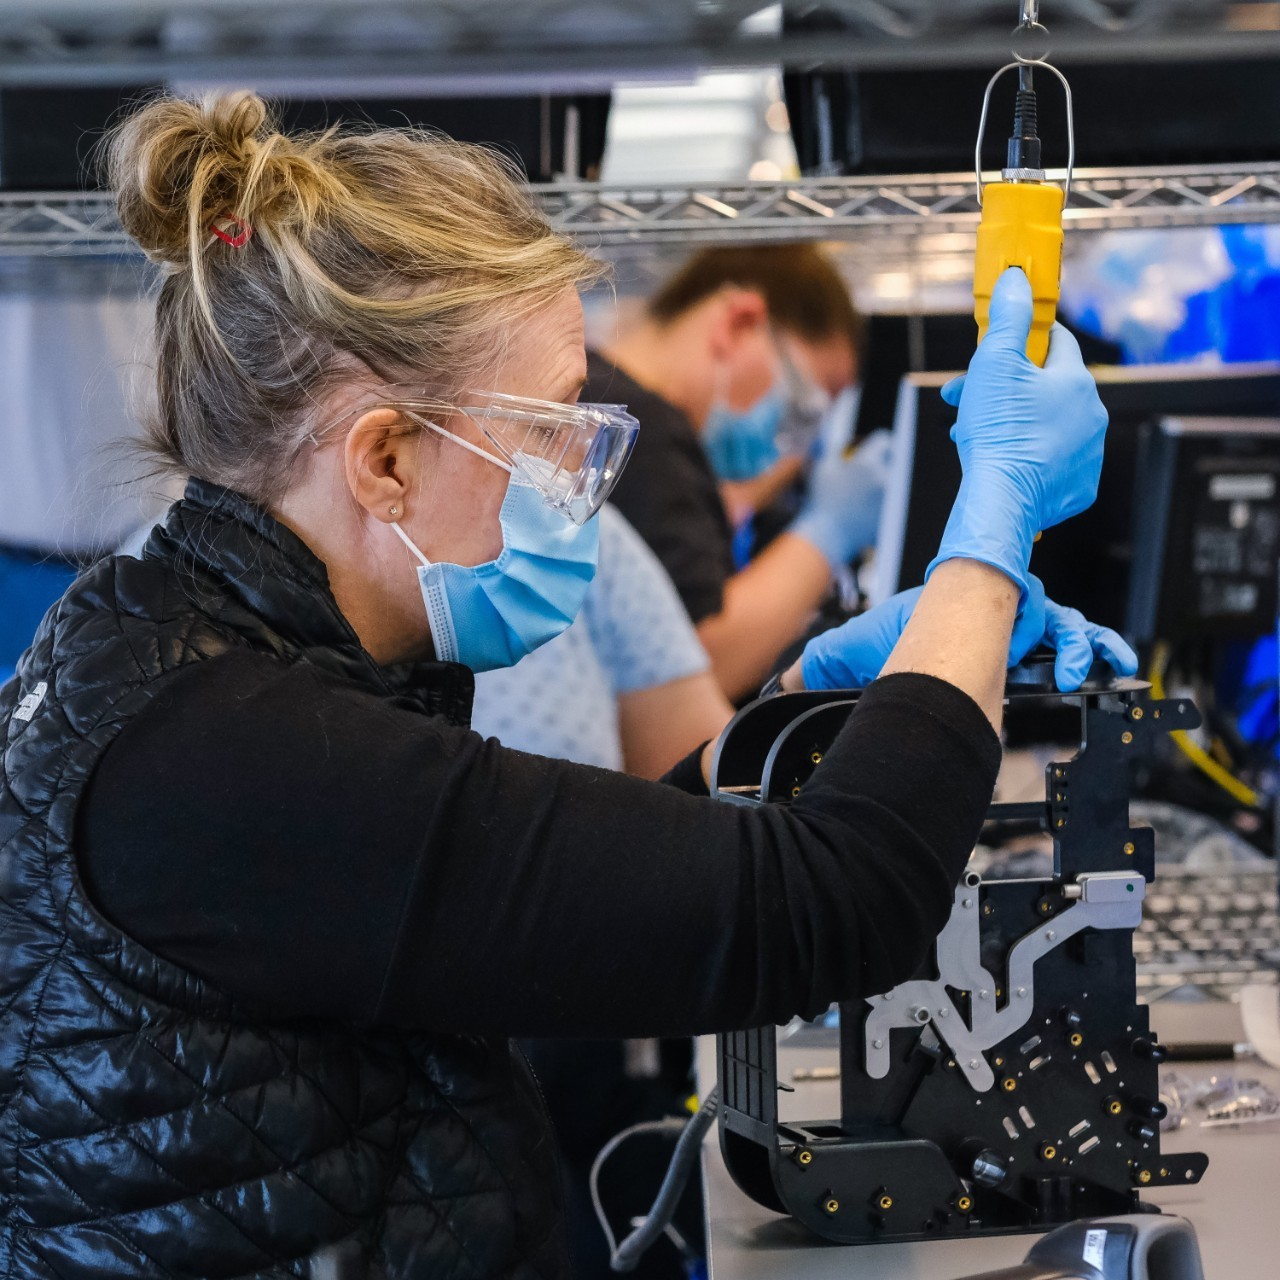 3D printing helped GM accelerate the production and delivery of 30,000 ventilators this month as part of a government contract in response to COVID-19. Image Courtesy of GM